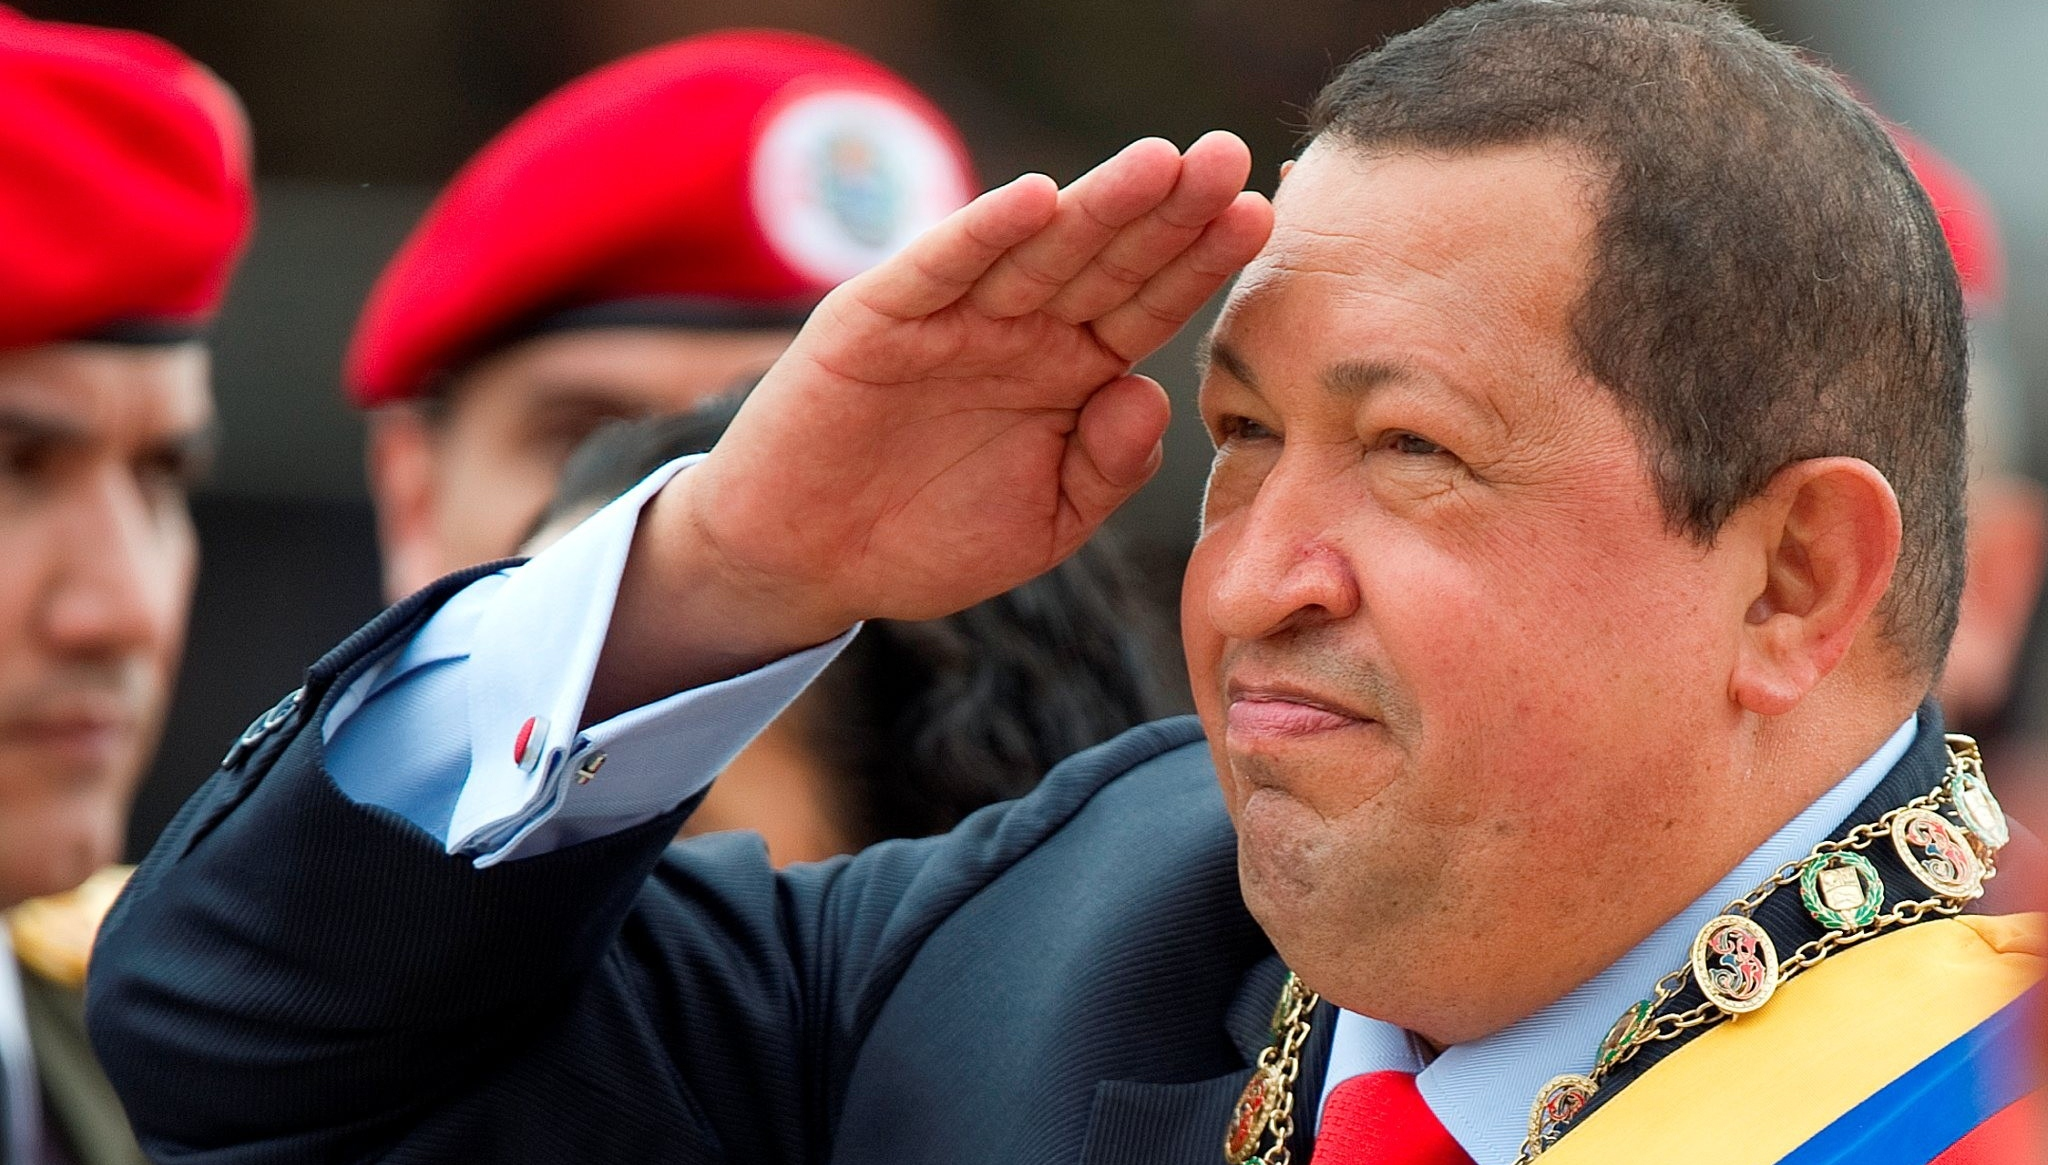 Venezuelan President Hugo Chavez salutes during a military parade to commemorate the 20th anniversary of his failed coup attempt, on February 4, 2012, in Caracas